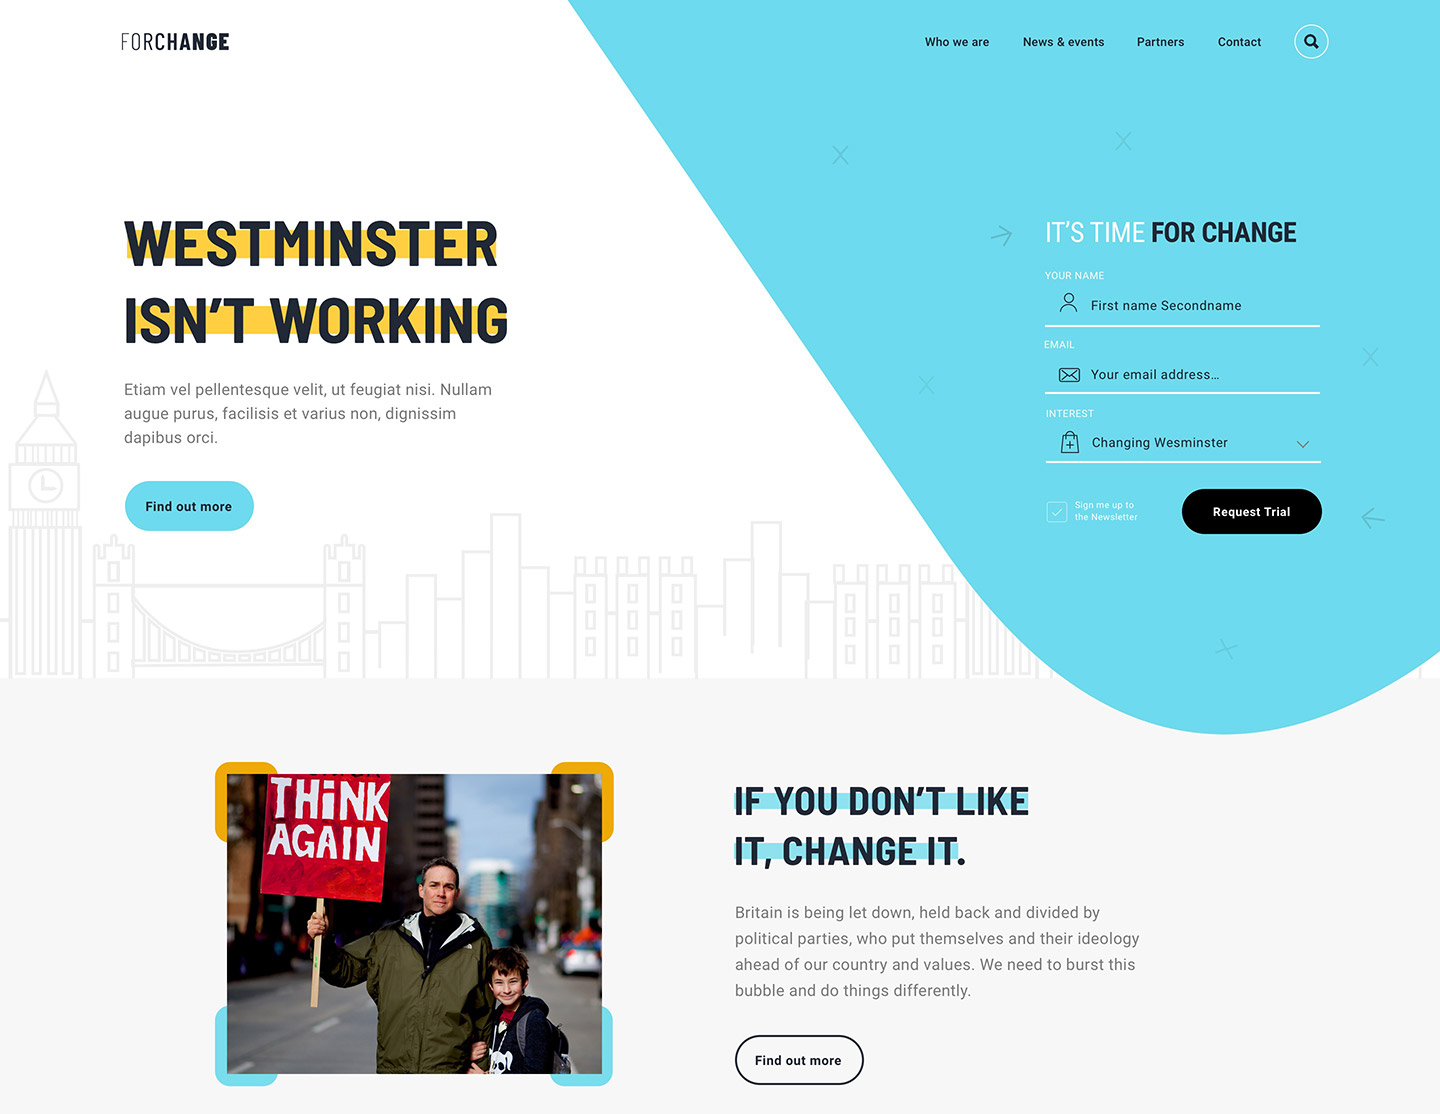 Forchange_Homepage_one@2x